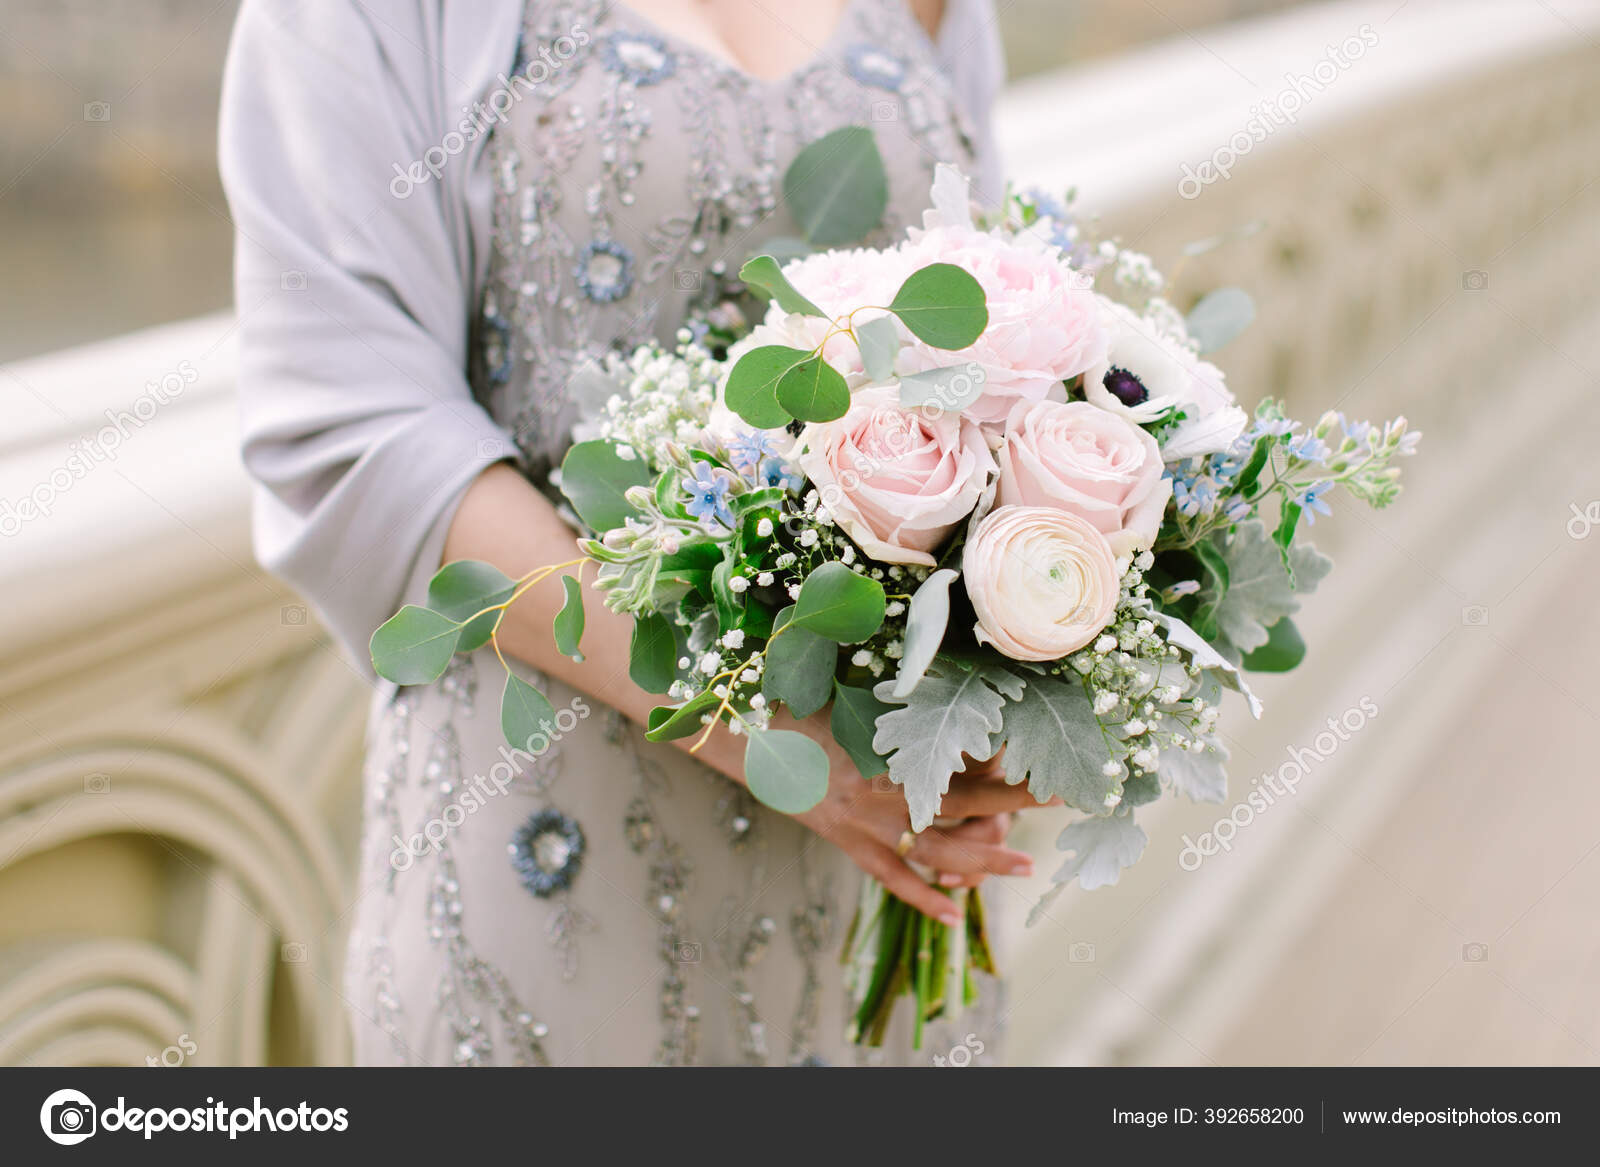 Romantic Organic Bridal Bouquet Made Light Colored Florals Baby Pink Stock Photo C Marthagraham 392658200